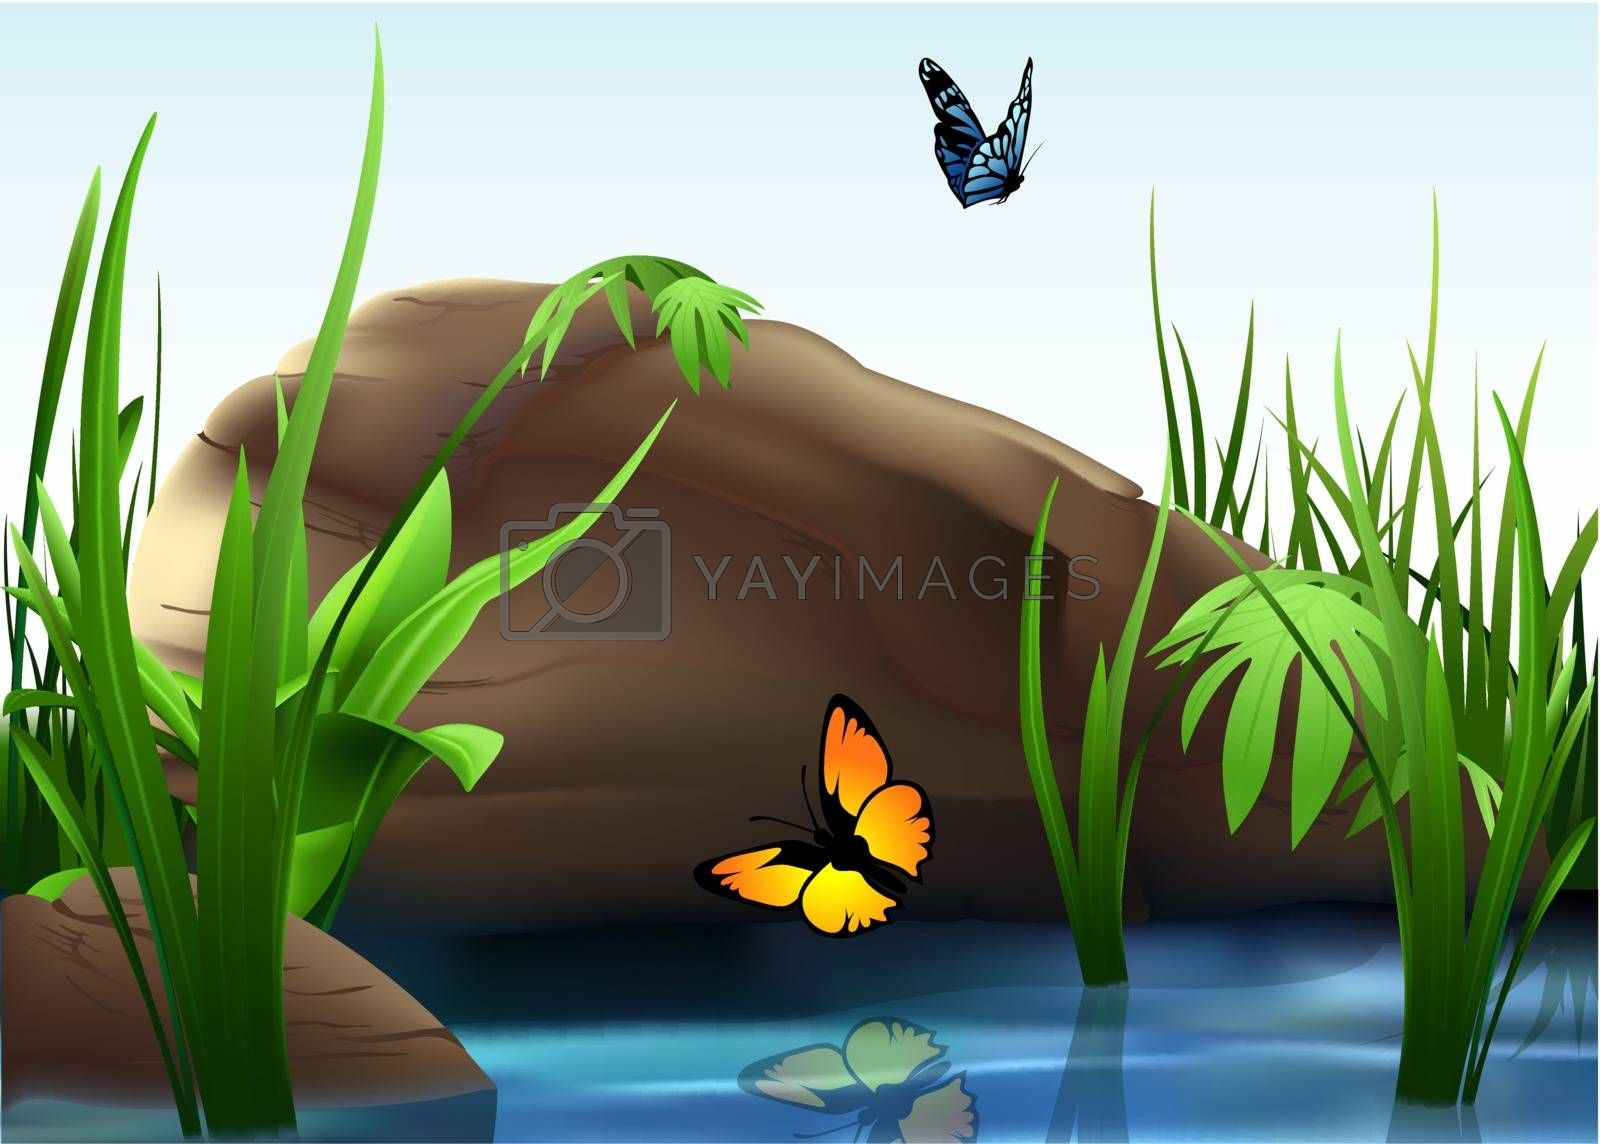 Nature - River And Boulder, Background Cartoon Illustration, Vector